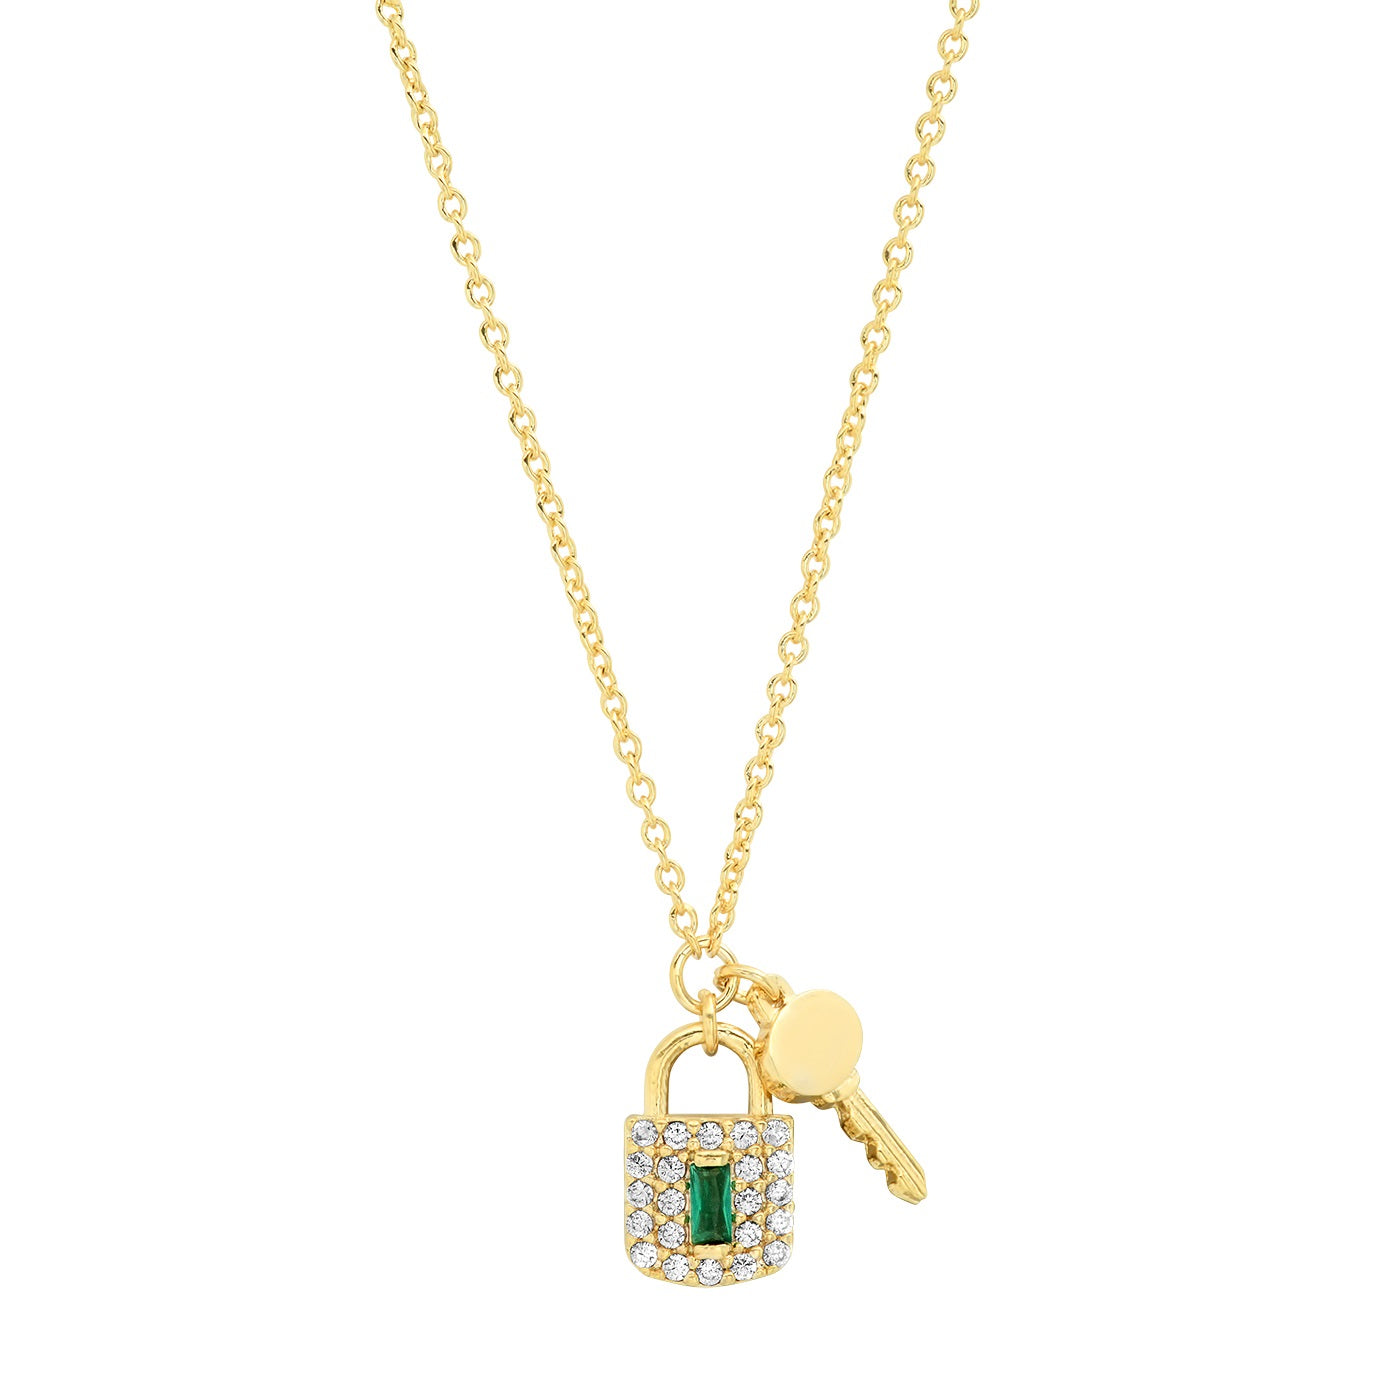 Pave Lock and Key Charm Necklace with Green Accent Stone